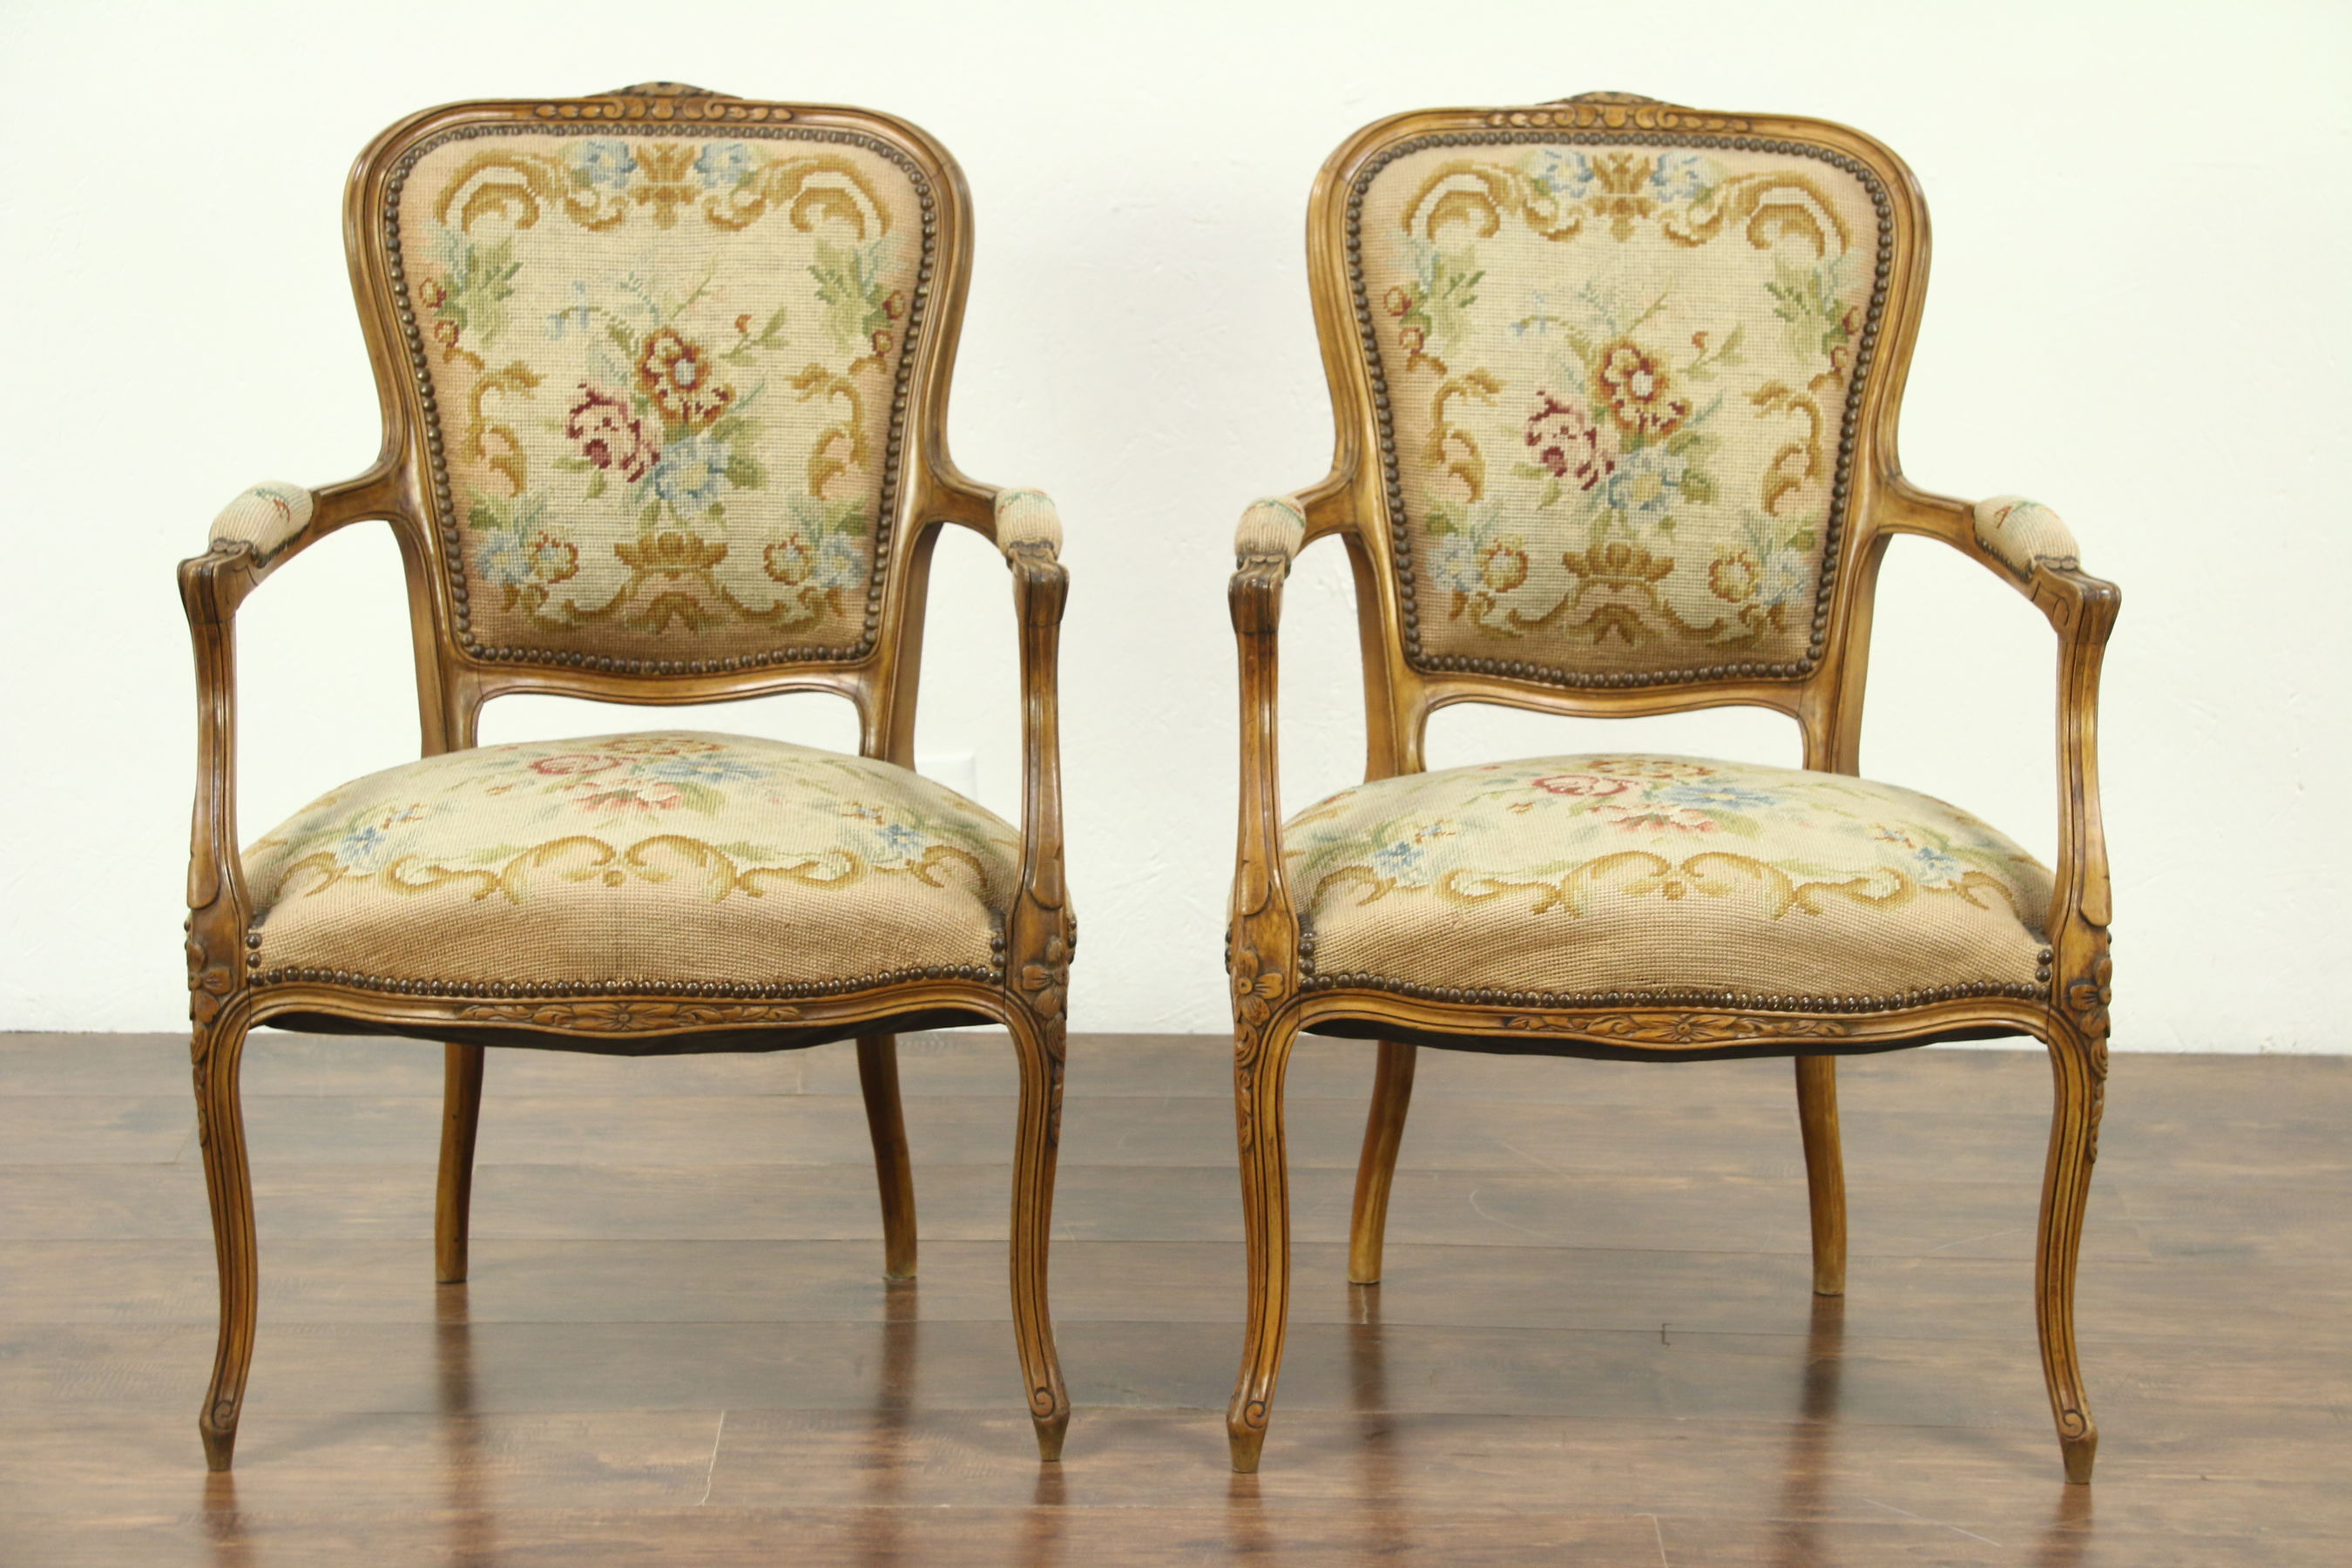 Pair of Carved French 1925 Antique Chairs, Needlepoint Upholstery - Harp  Gallery